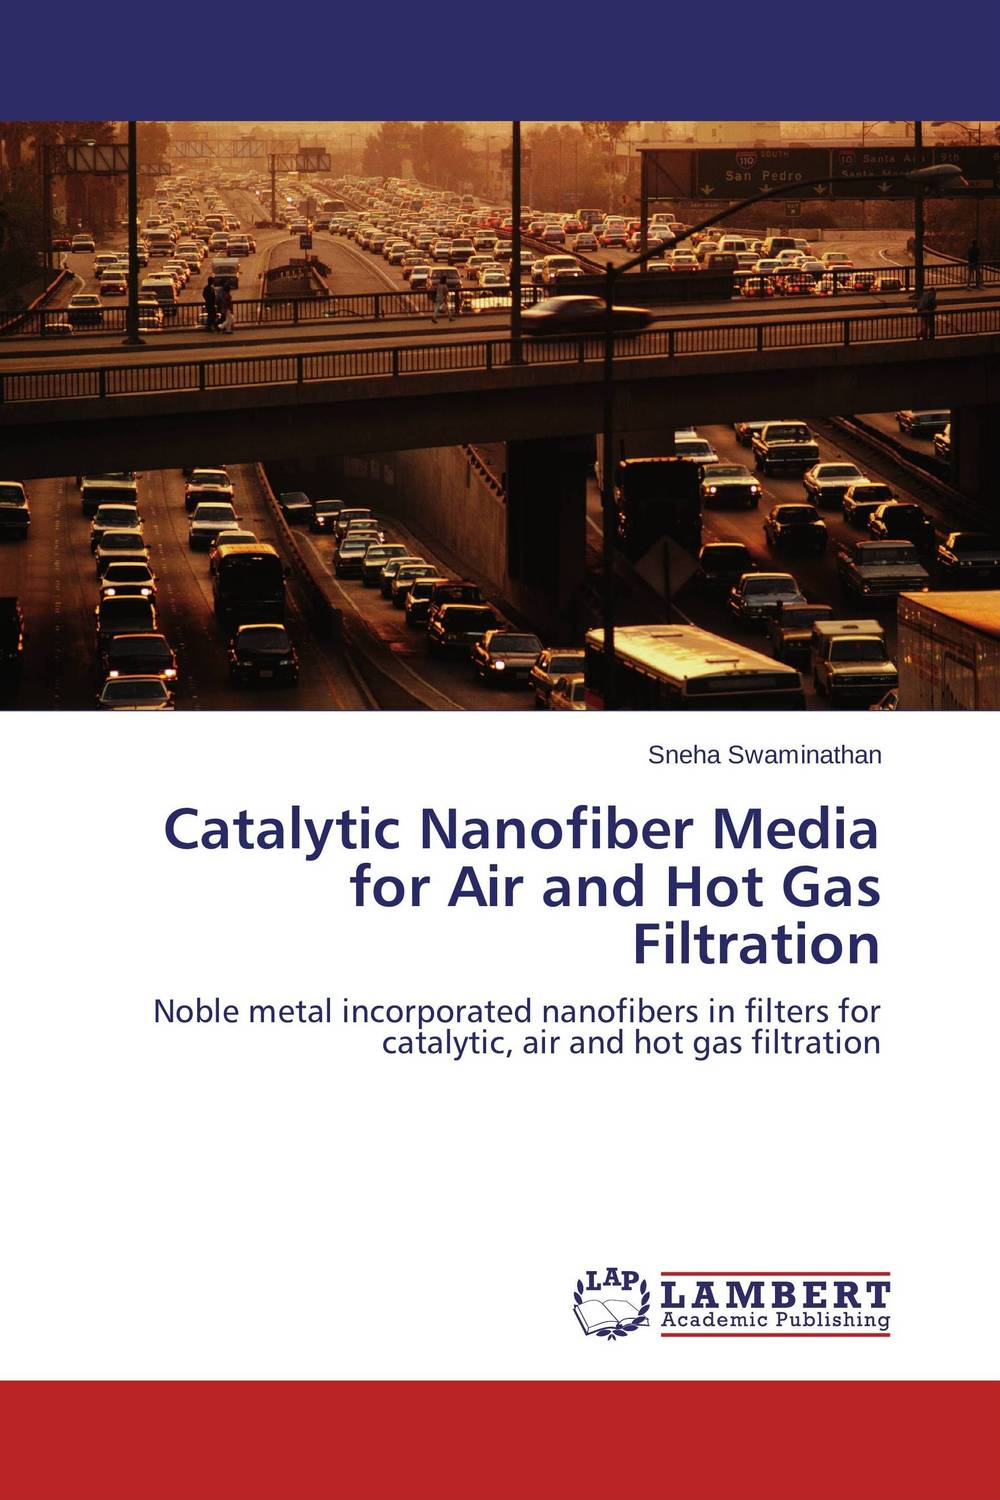 Catalytic Nanofiber Media for Air and Hot Gas Filtration